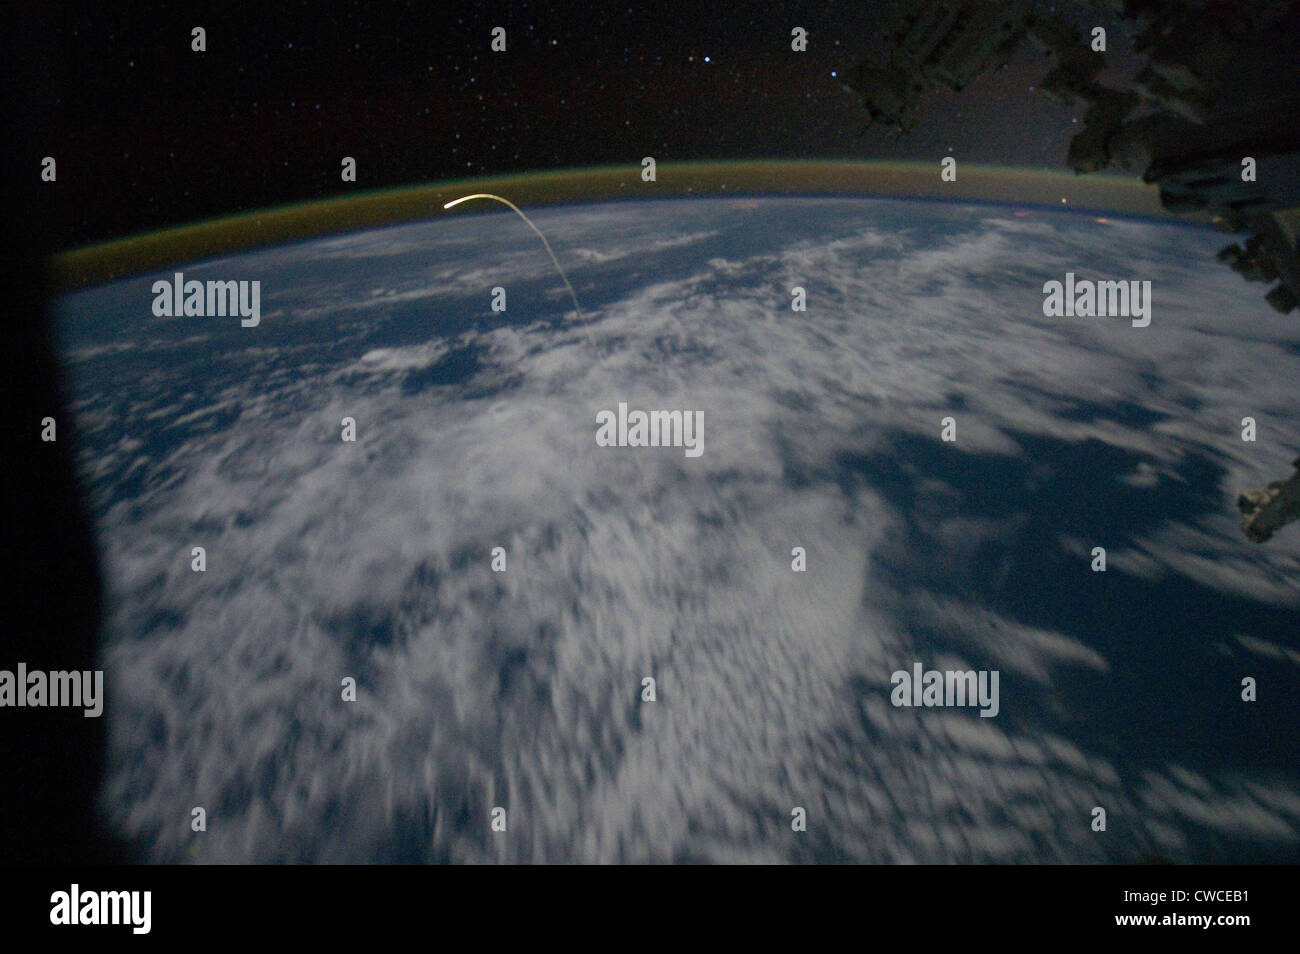 Space shuttle Atlantis re-entry flight path resembles a bean sprout against clouds and city lights. Photograph by - Stock Image